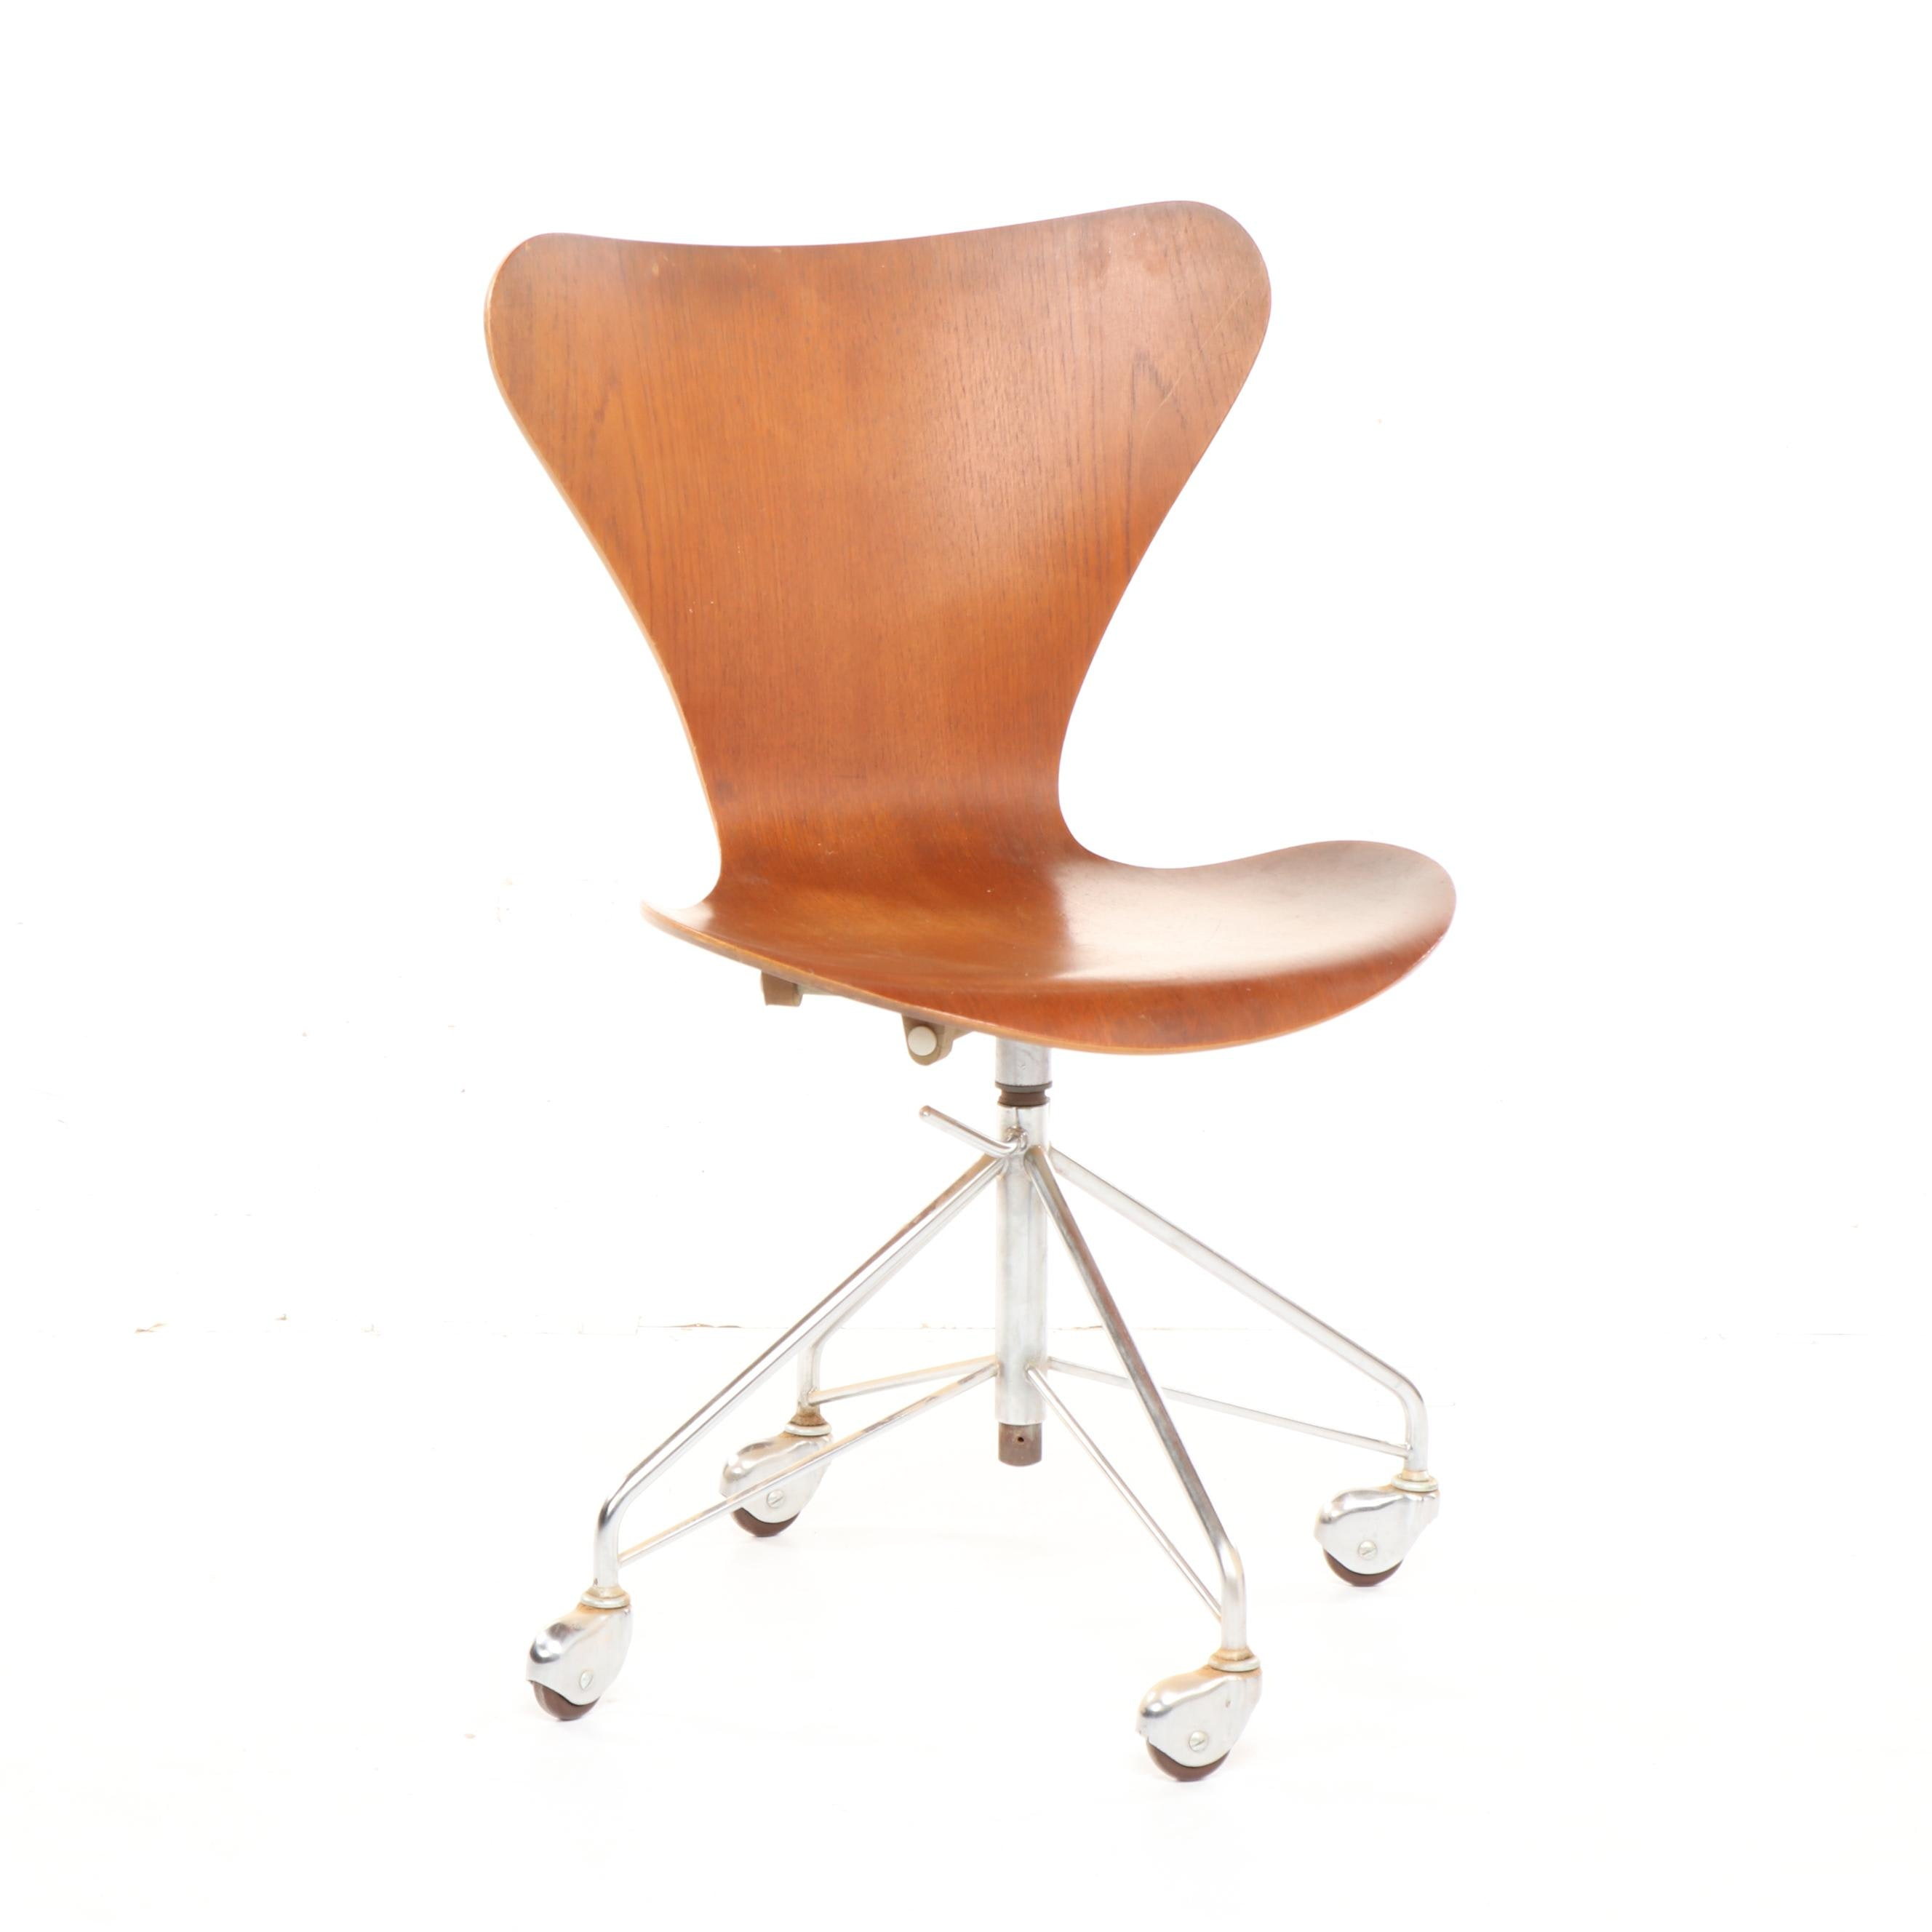 Arne jacobsen office chair Model 3117 Everything But The House Series 7